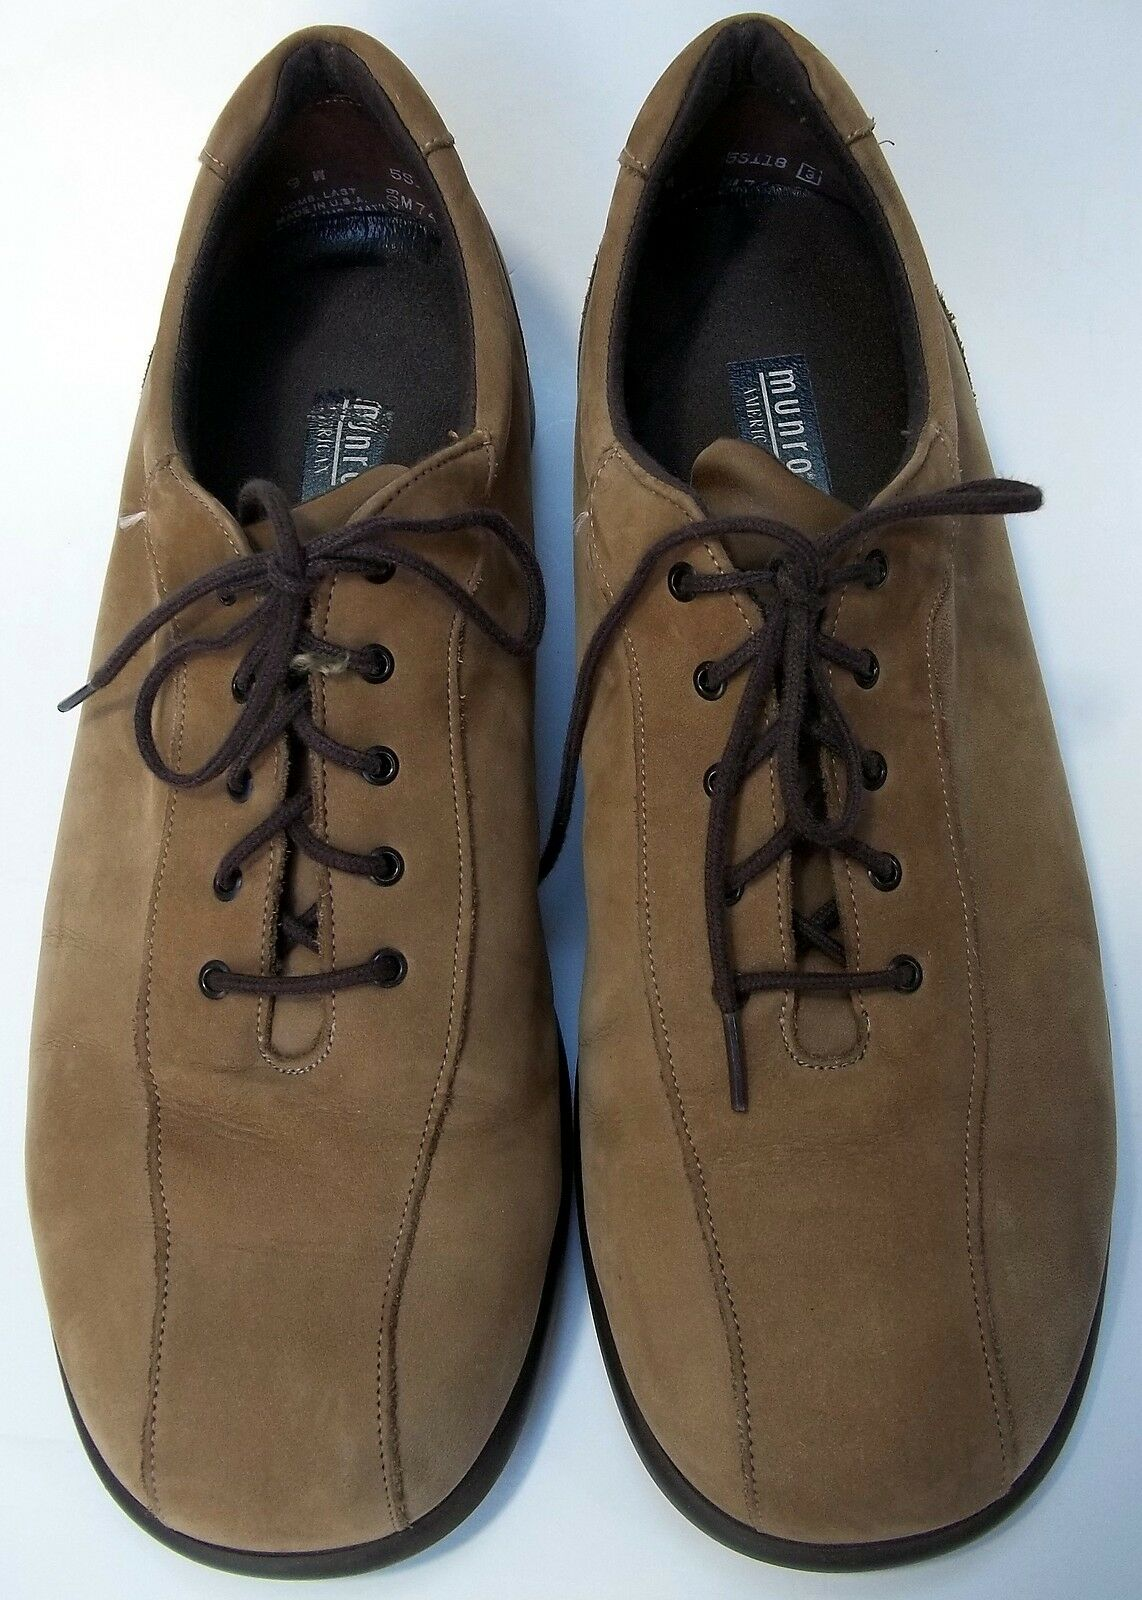 Munro chaussures American Lace Up Oxford USA femmes Taille 9W